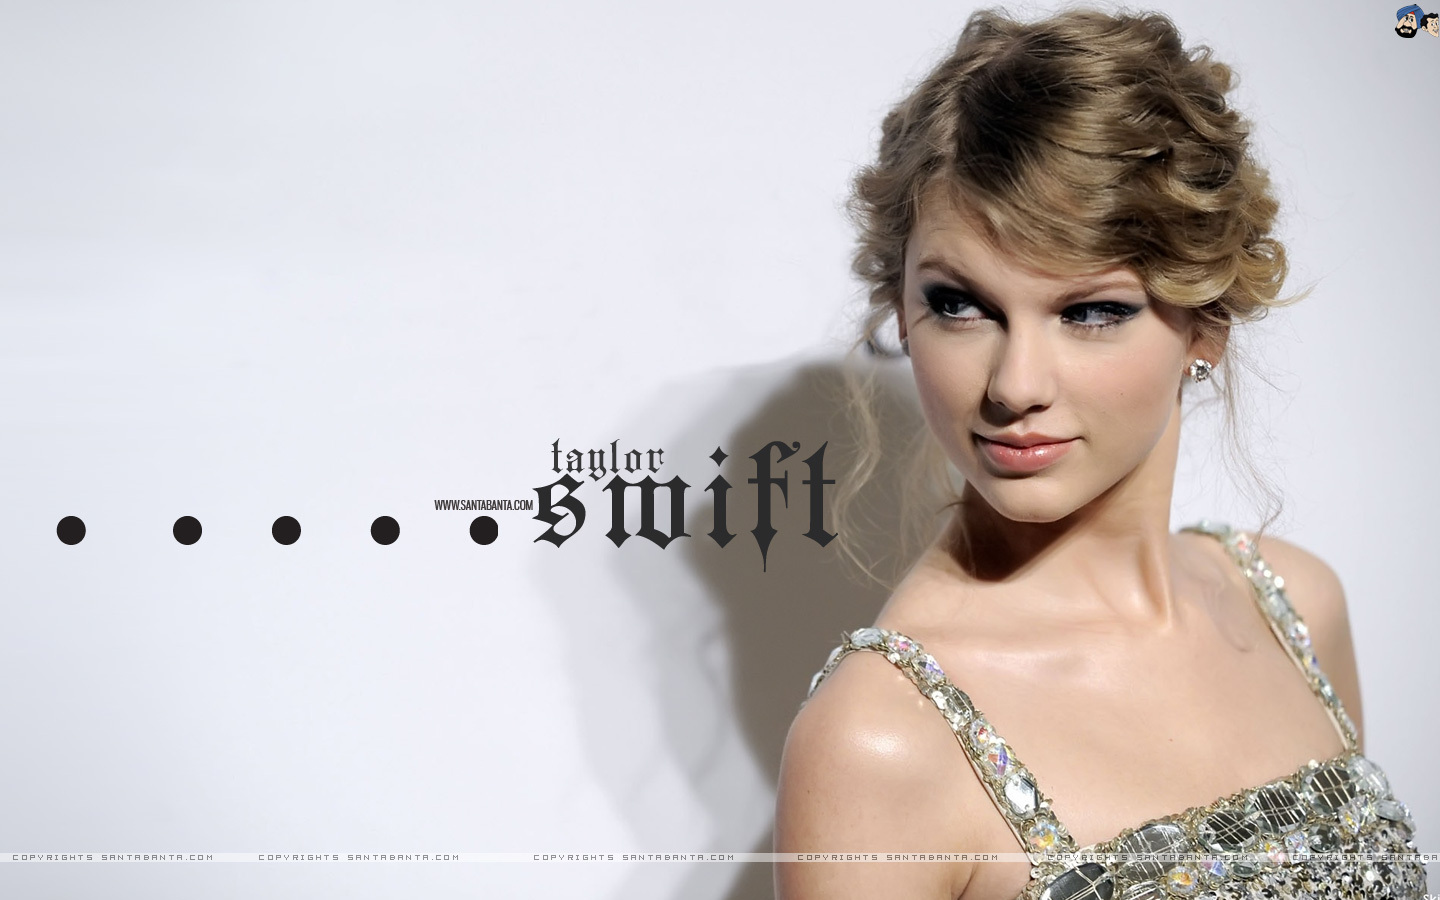 Taylor Swift Lovely Taylor Wallpaper 192